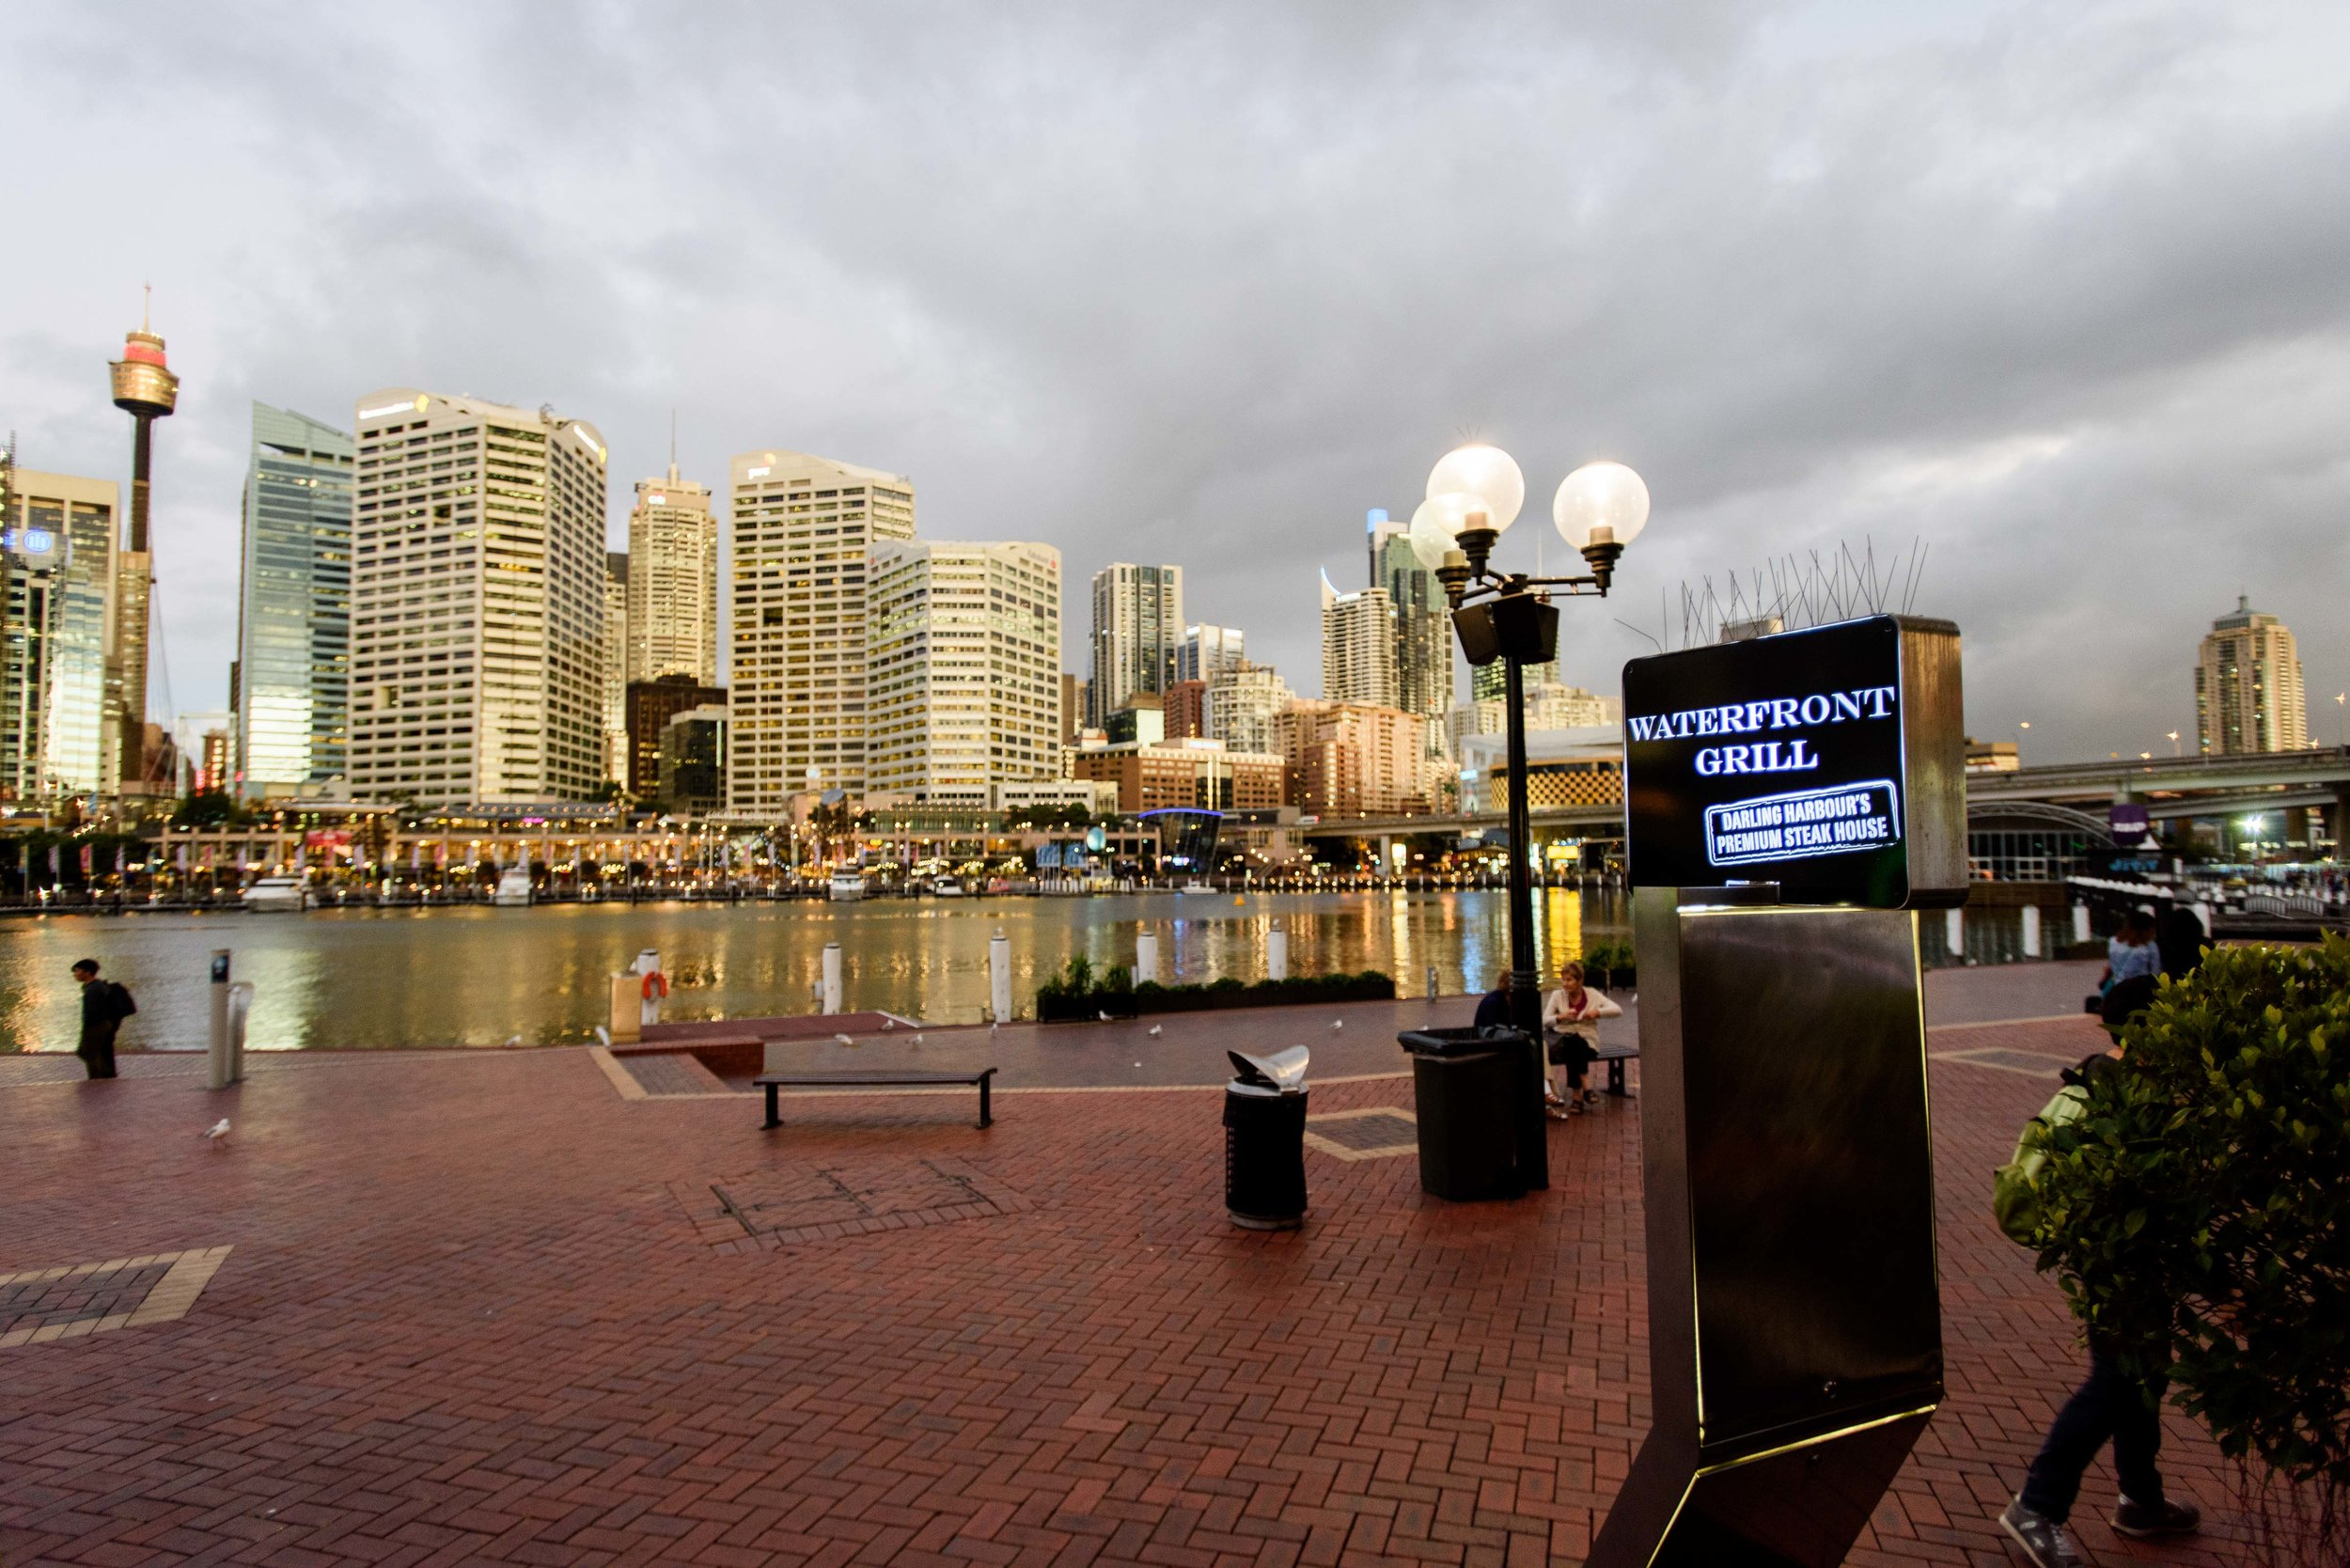 Waterfront-Grill-Gallery-17.jpg